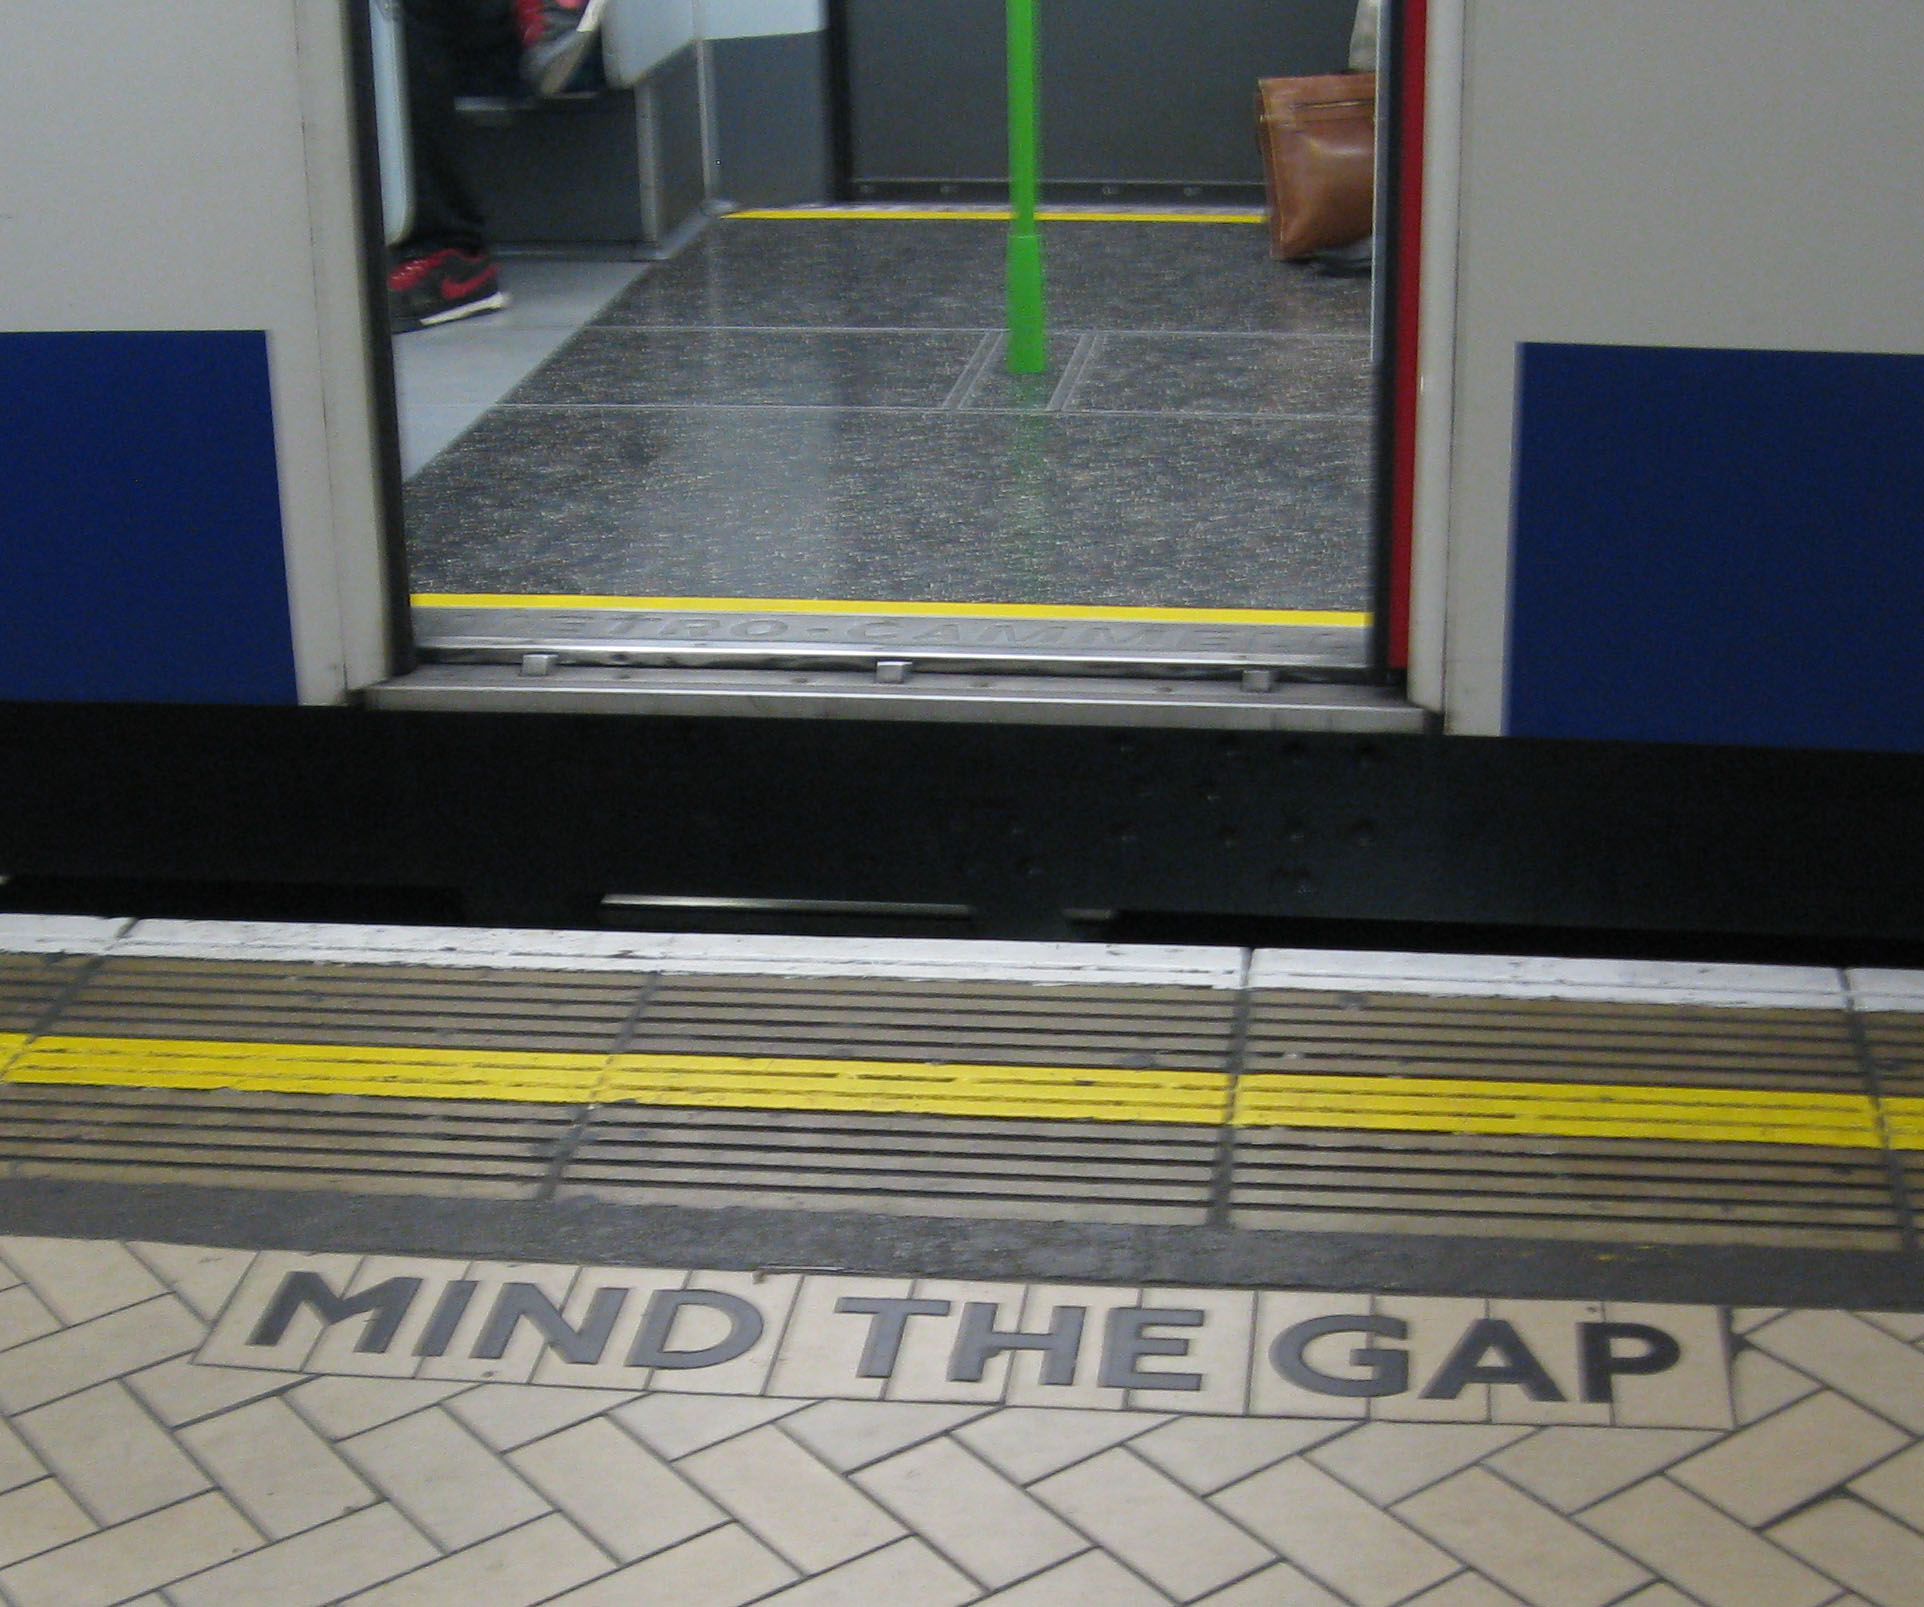 London Underground mind the gap.png